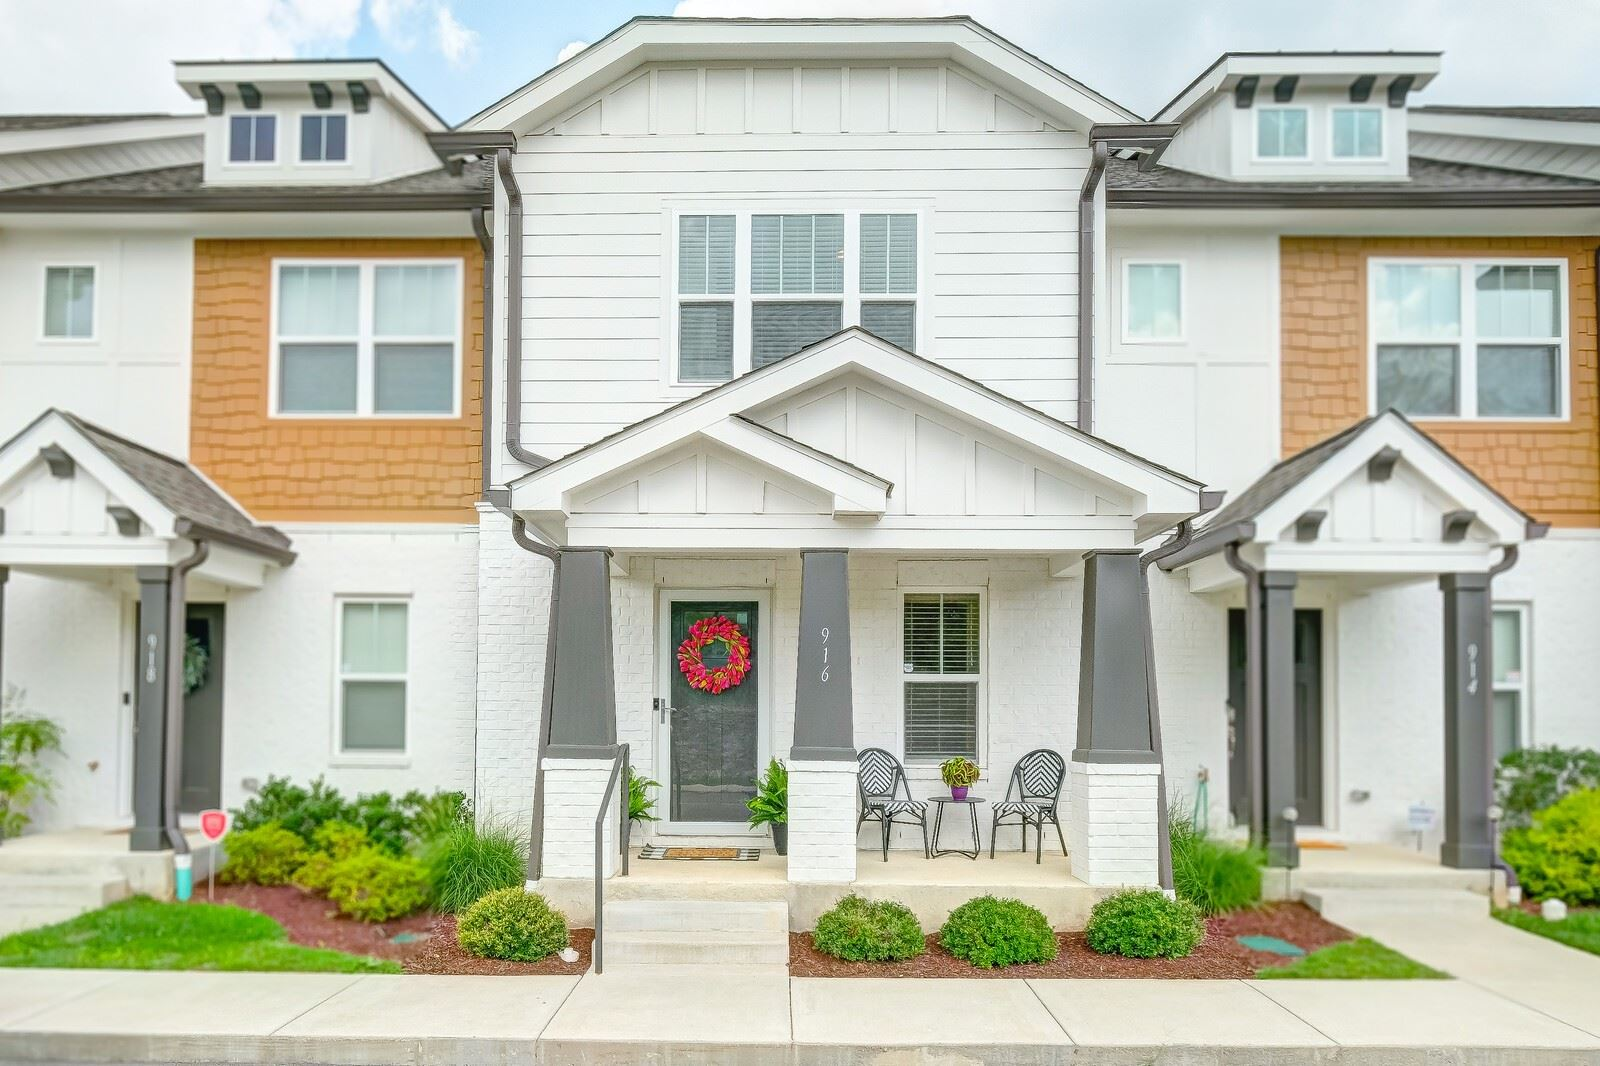 916 Governors Ct, Antioch, TN 37013 - MLS#: 2273773